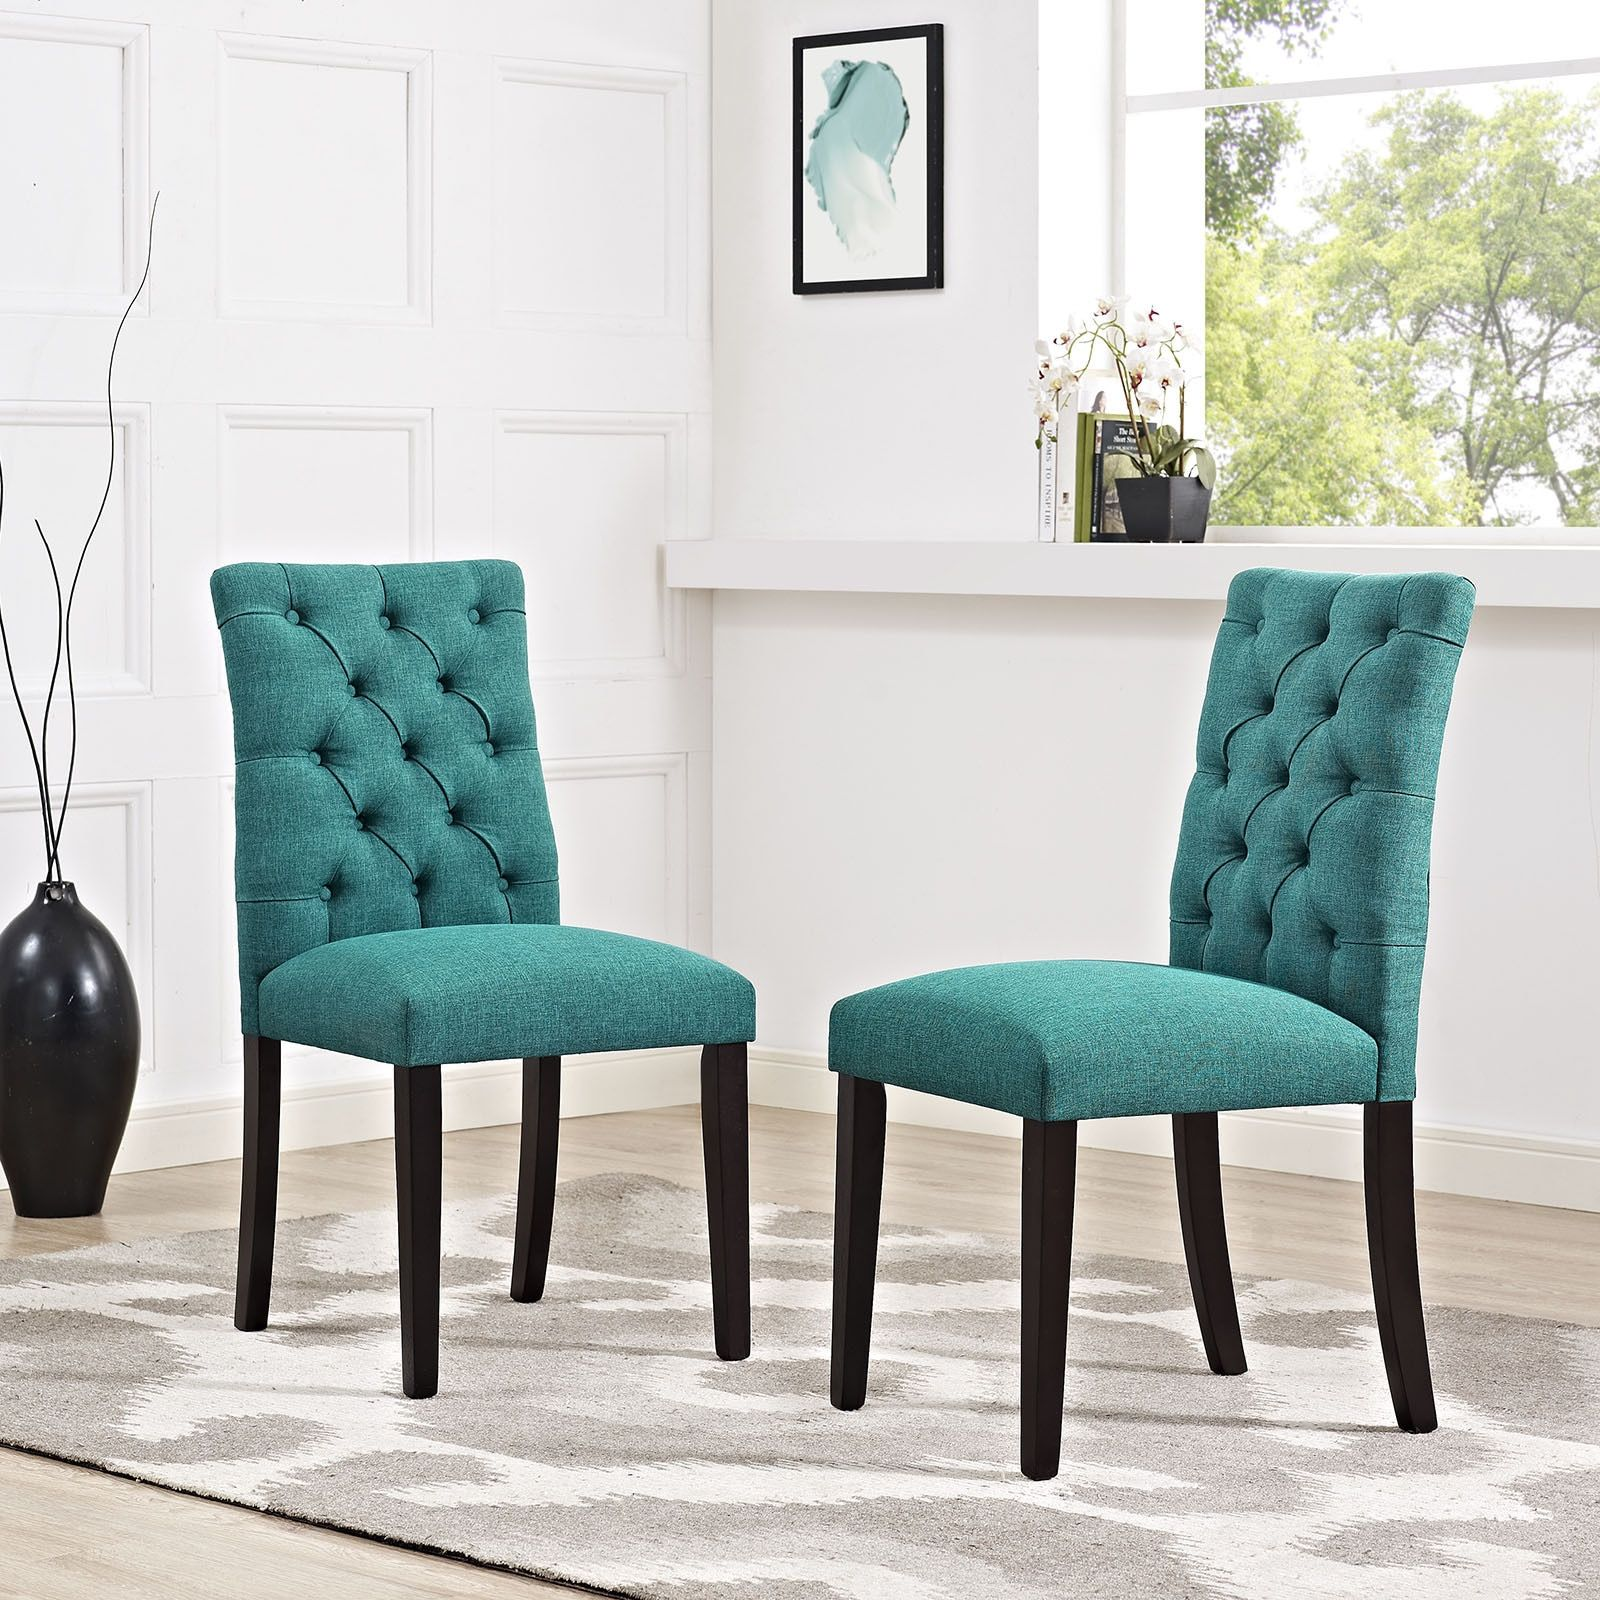 Black And Teal Dining Room Dining Room Teal Teal Rooms Dining